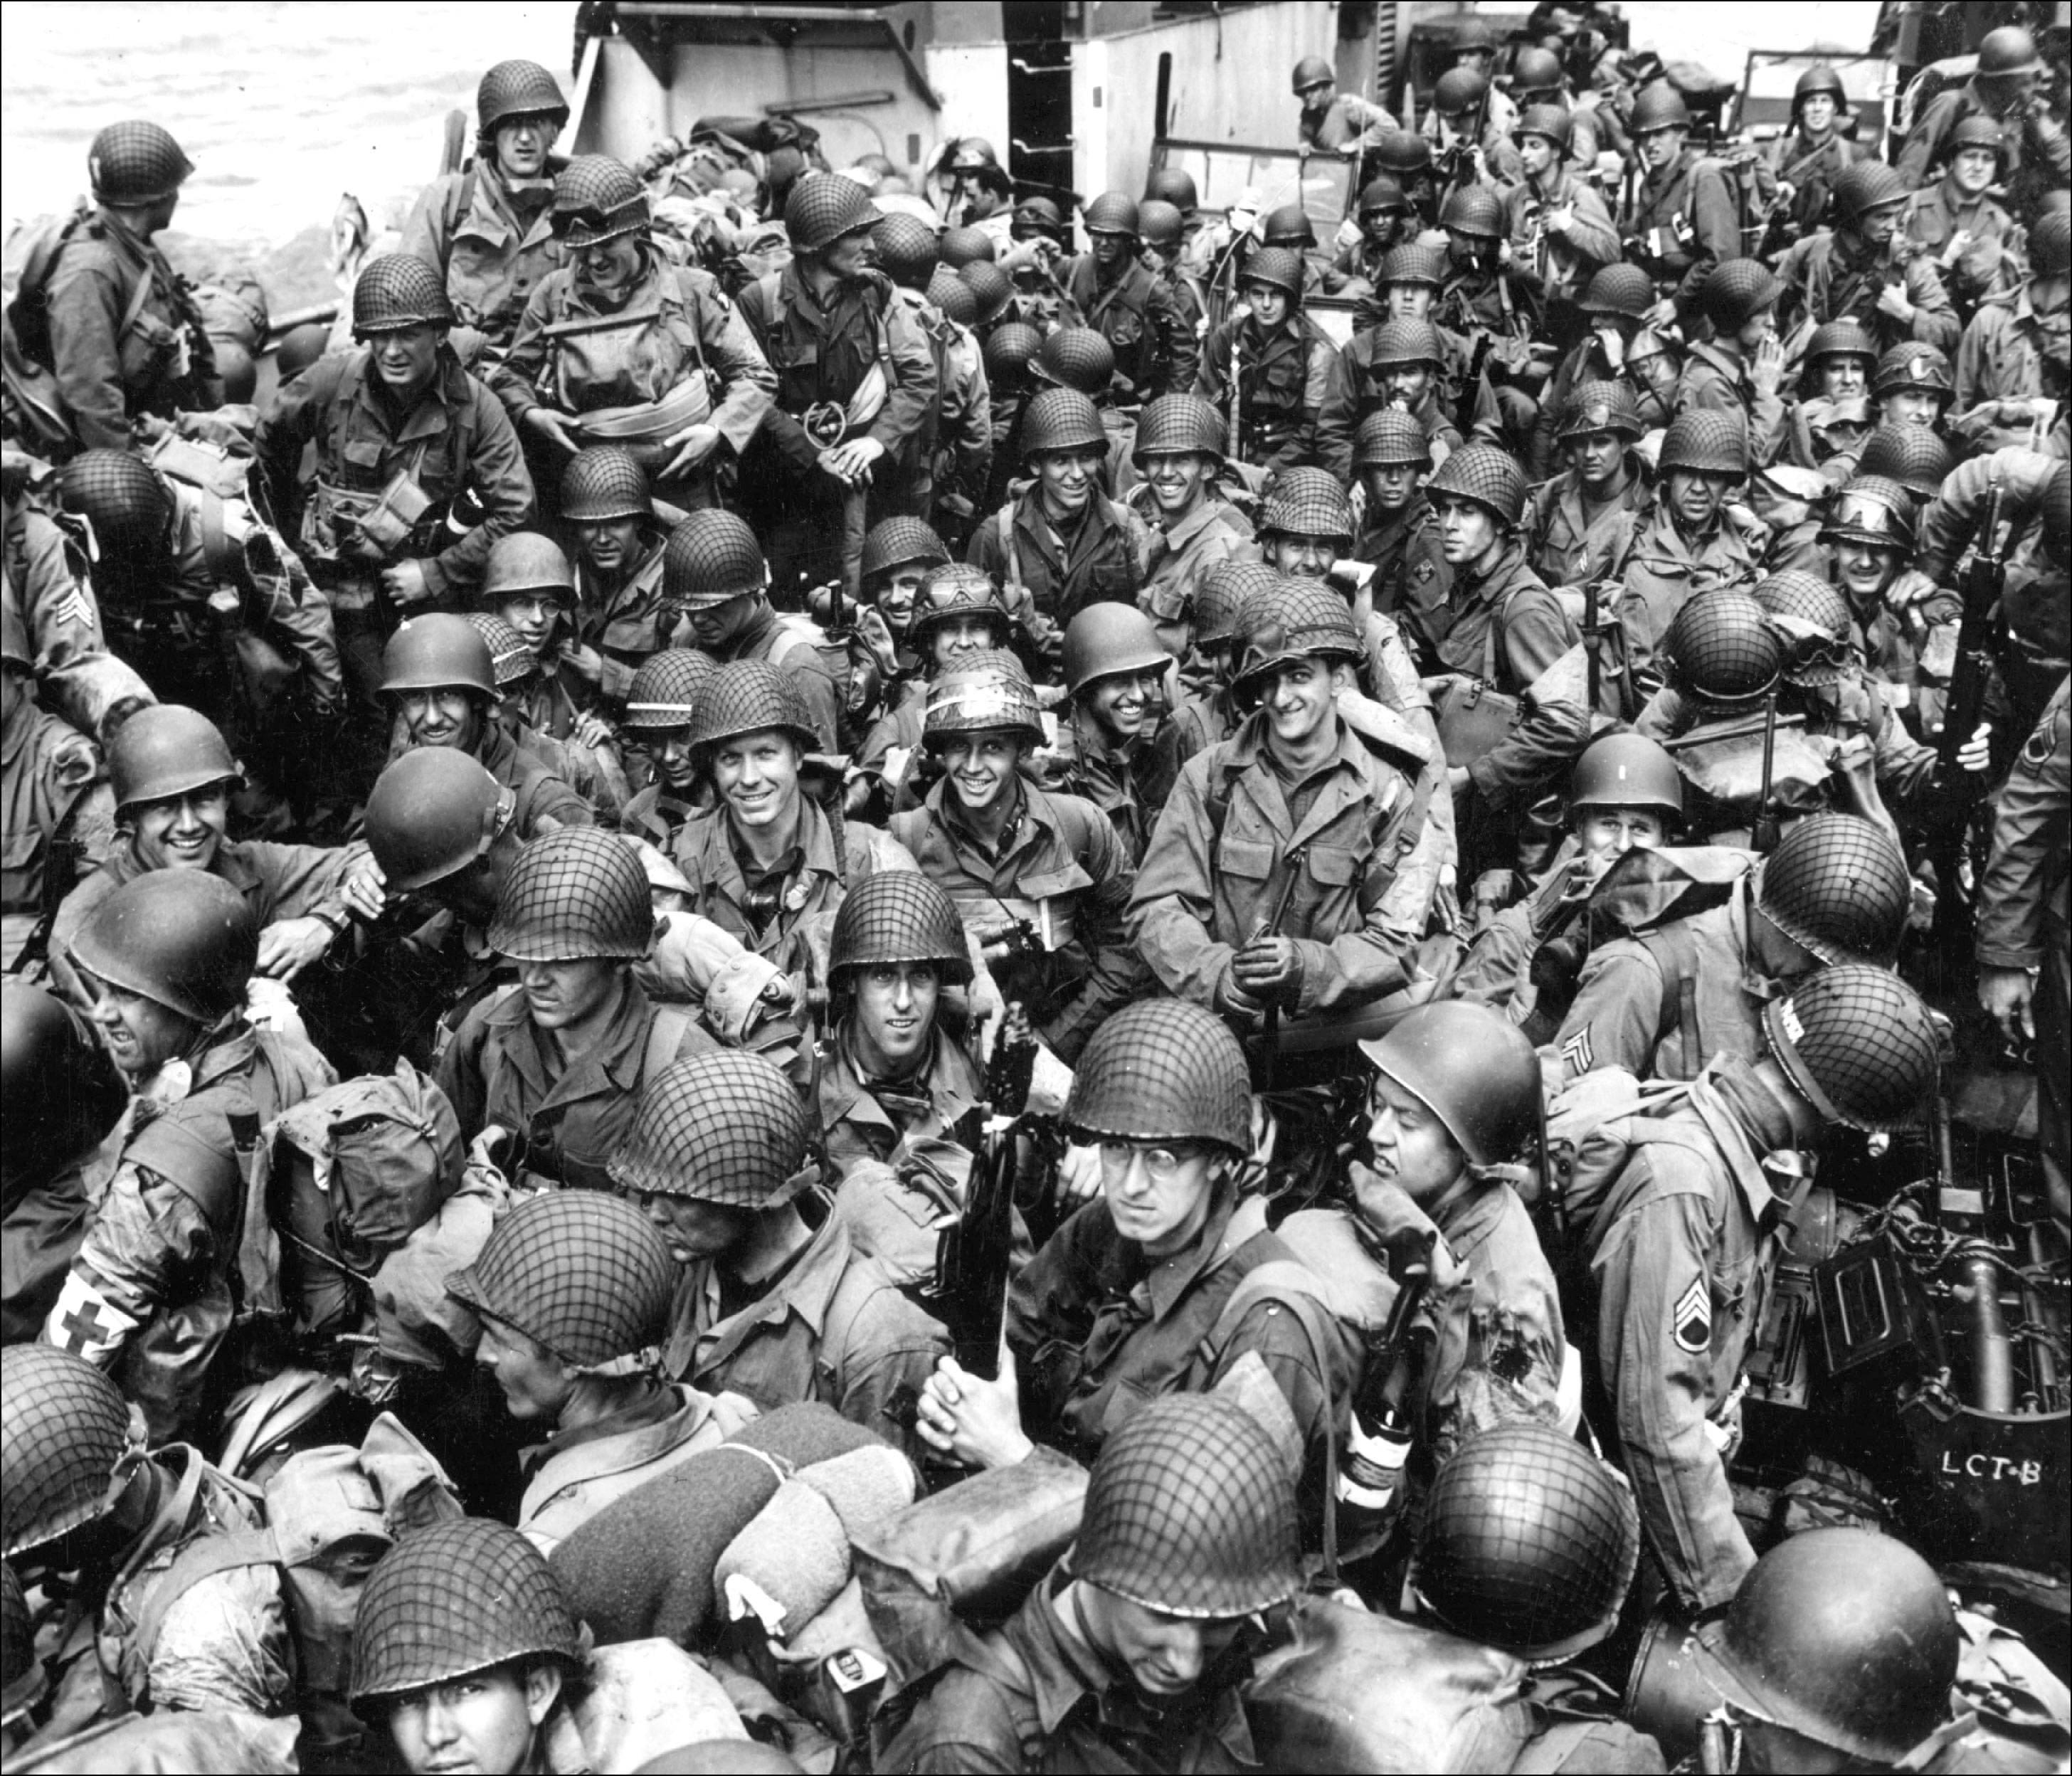 Members of the 101st Airborne Infantry Division and the 4th Infantry  Division crowd aboard an LCT on the way to Utah Beach, June 6, 1944. [2912  × 2496] : MilitaryPorn